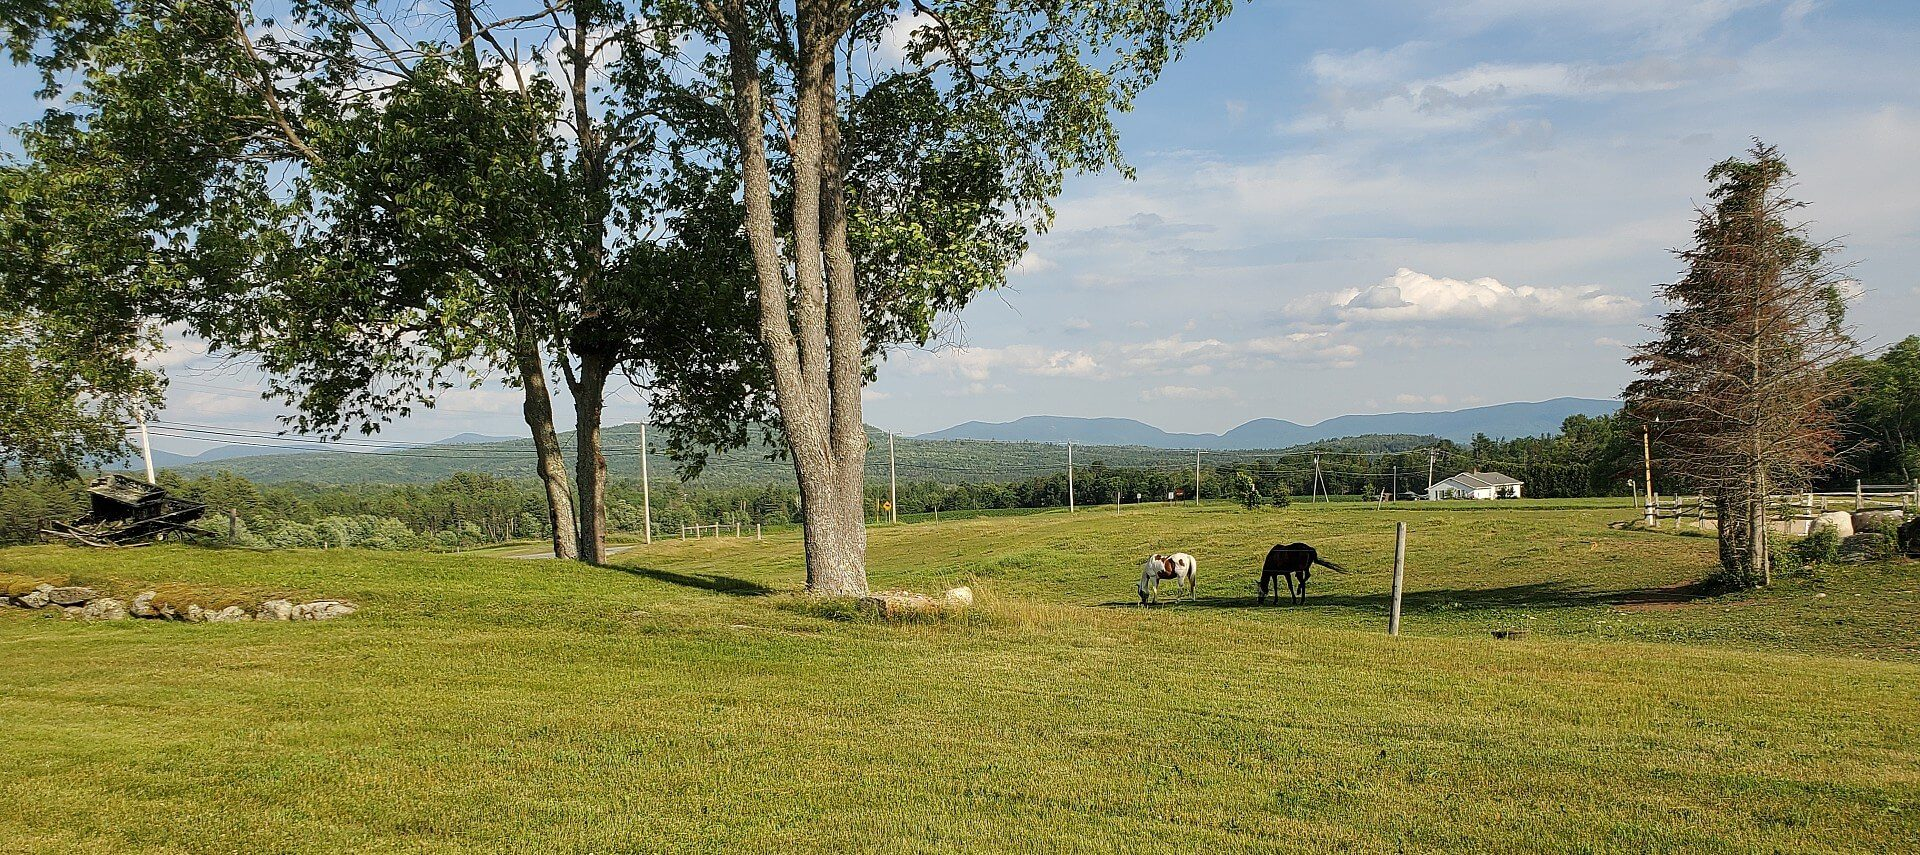 Wide open lawn space with two horses, tall trees and mountain range in the background